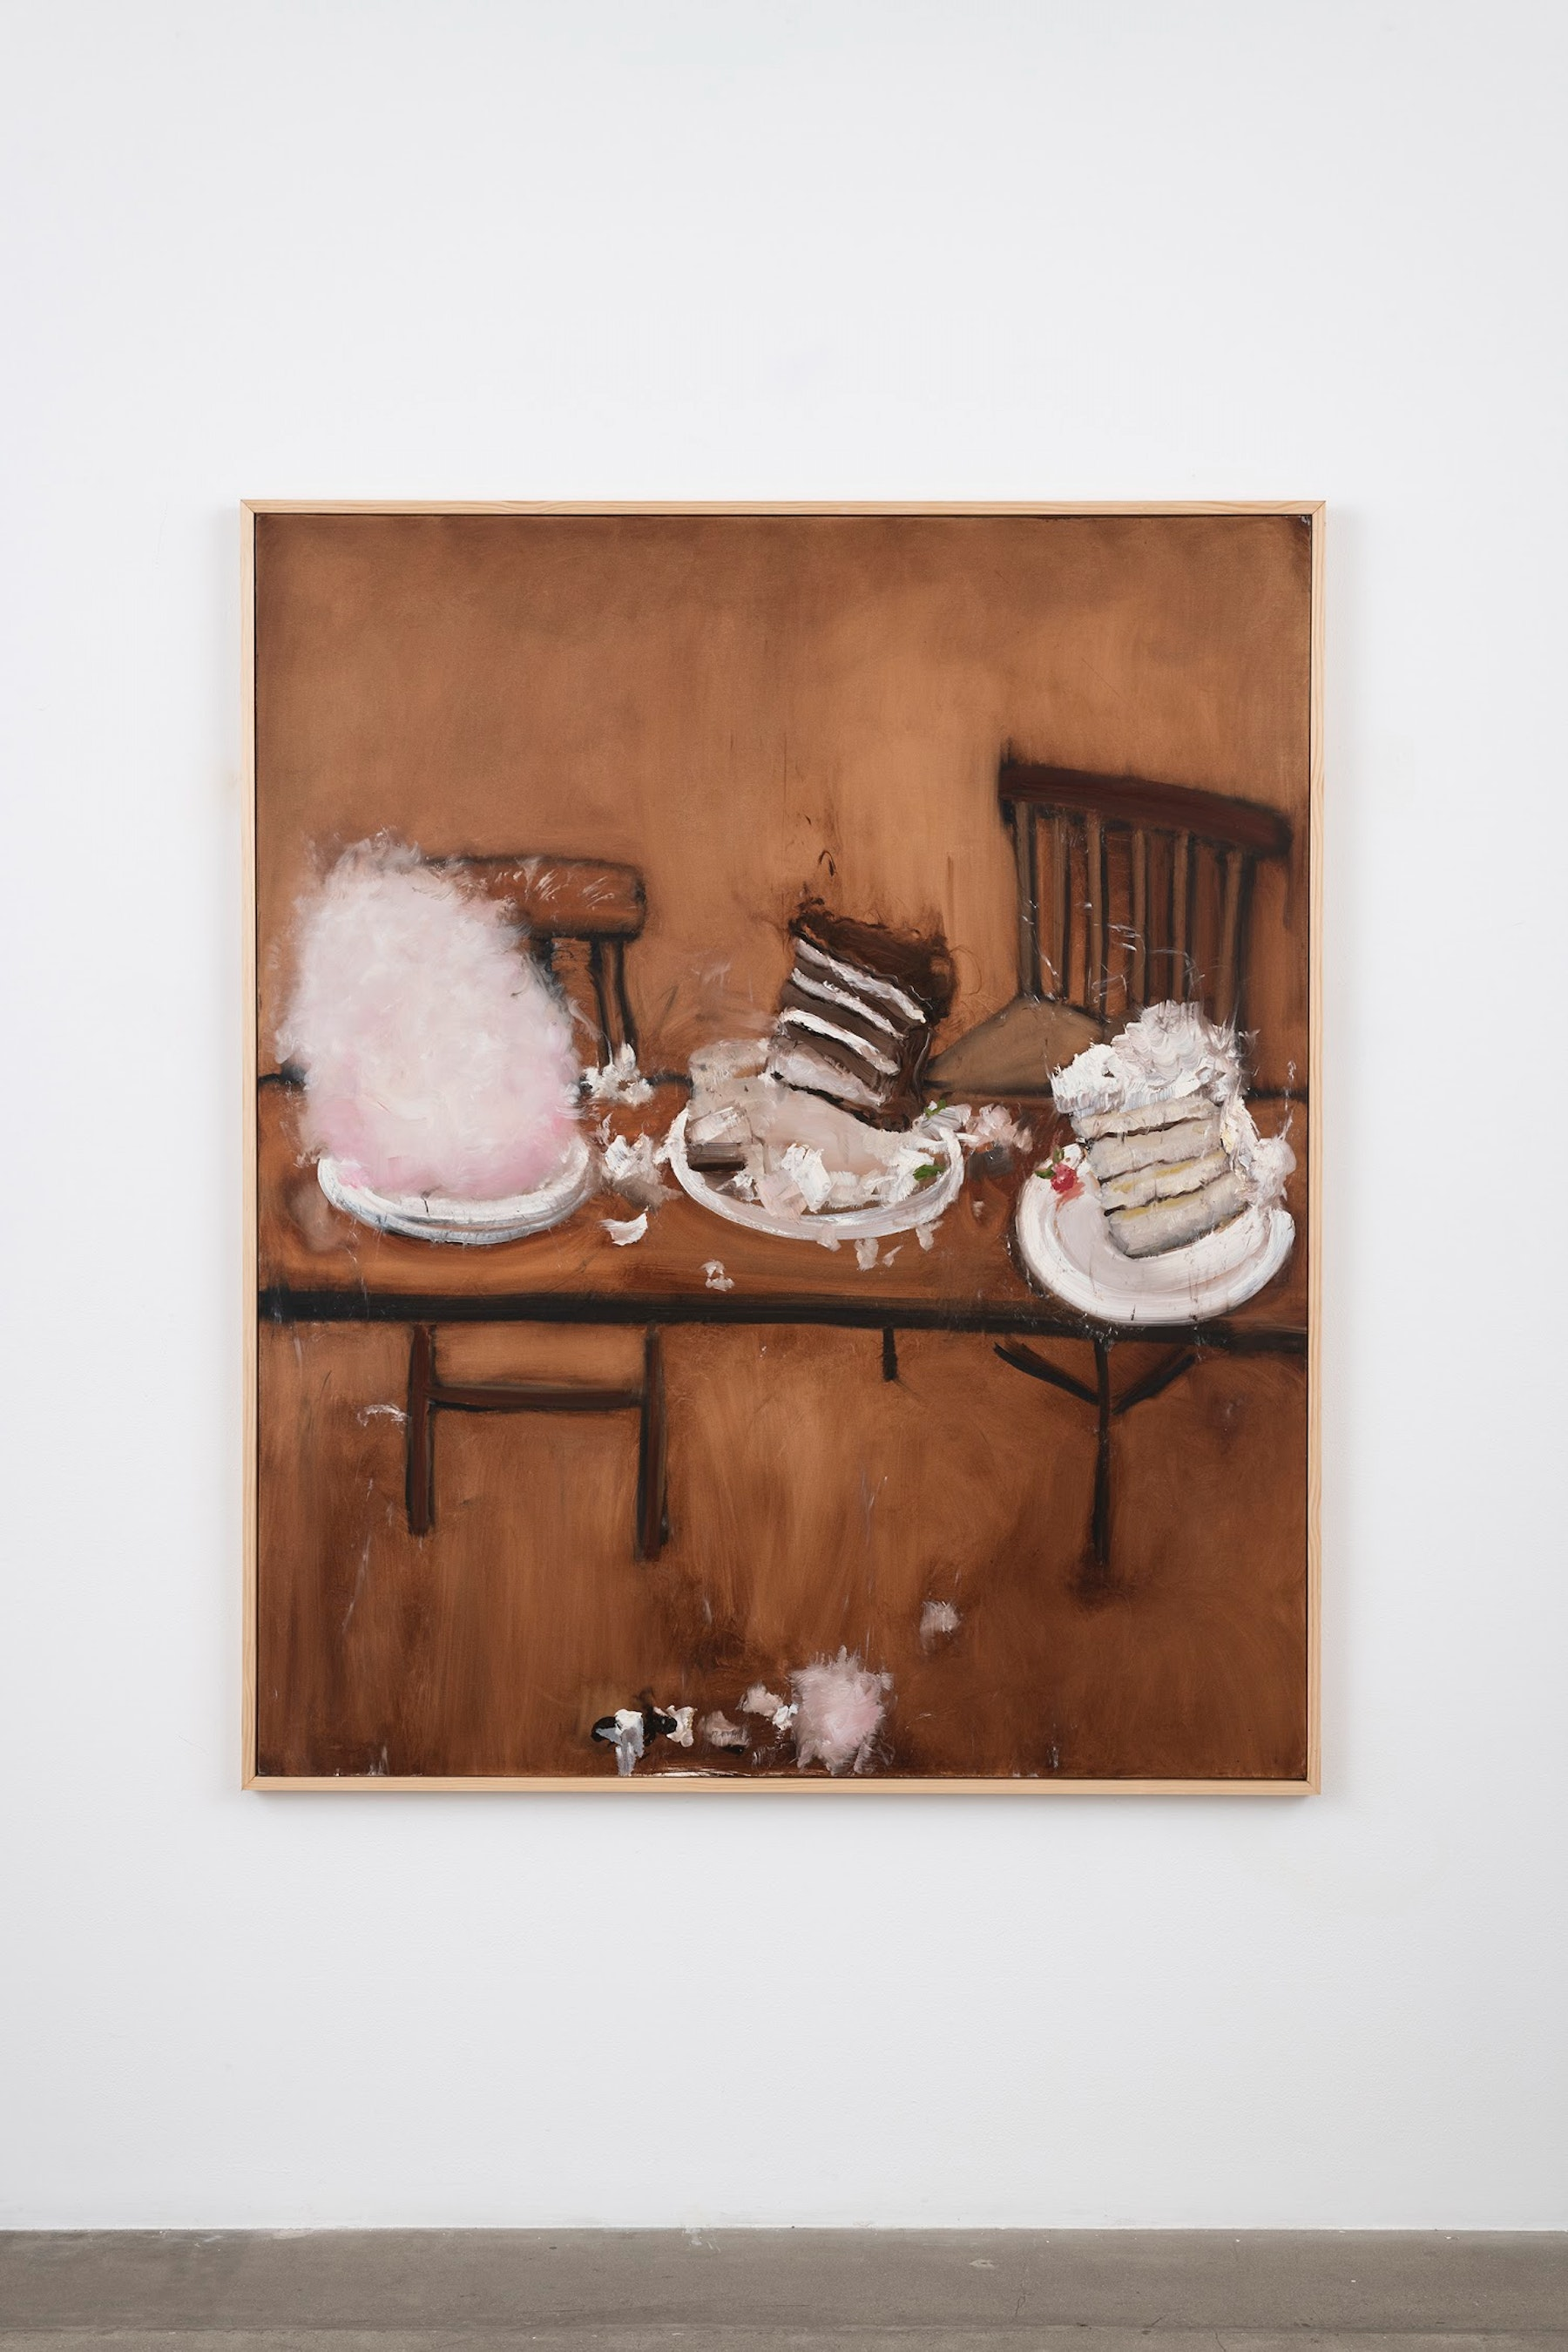 """Kim Dingle """"And Cake,"""" 2007 Oil on canvas 73.5 x 61.5 x 1.5"""" [HxWxD] (186.69 x 156.21 x 3.81 cm) Inventory #DIN257 Courtesy of the artist and Vielmetter Los Angeles Photo credit: Jeff McLane"""